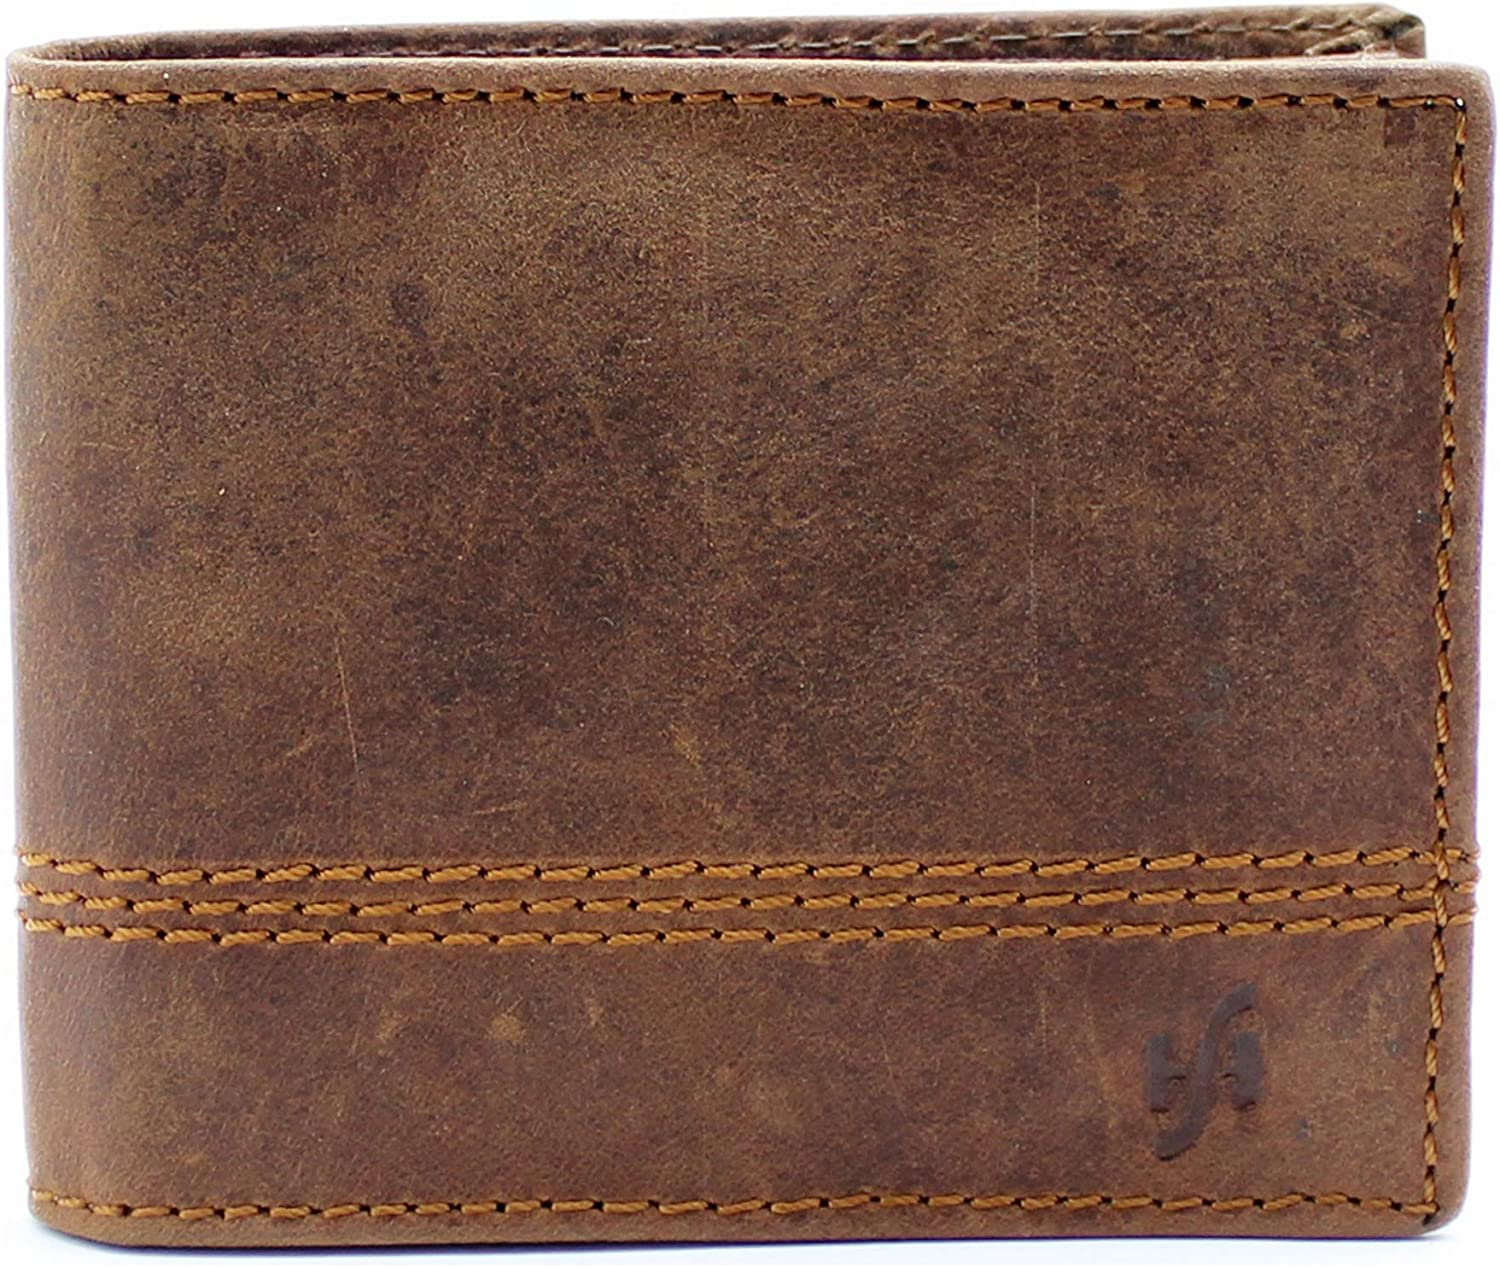 Brown Starhide RFID BLOCKING Wallet For Men Full Length Zipped Pocket Designed For Photo ID Size: 11.5cm x 2cm Genuine Distressed Hunter Leather Width 1150 x 9.5cm Credit Cards And Cash Length Height